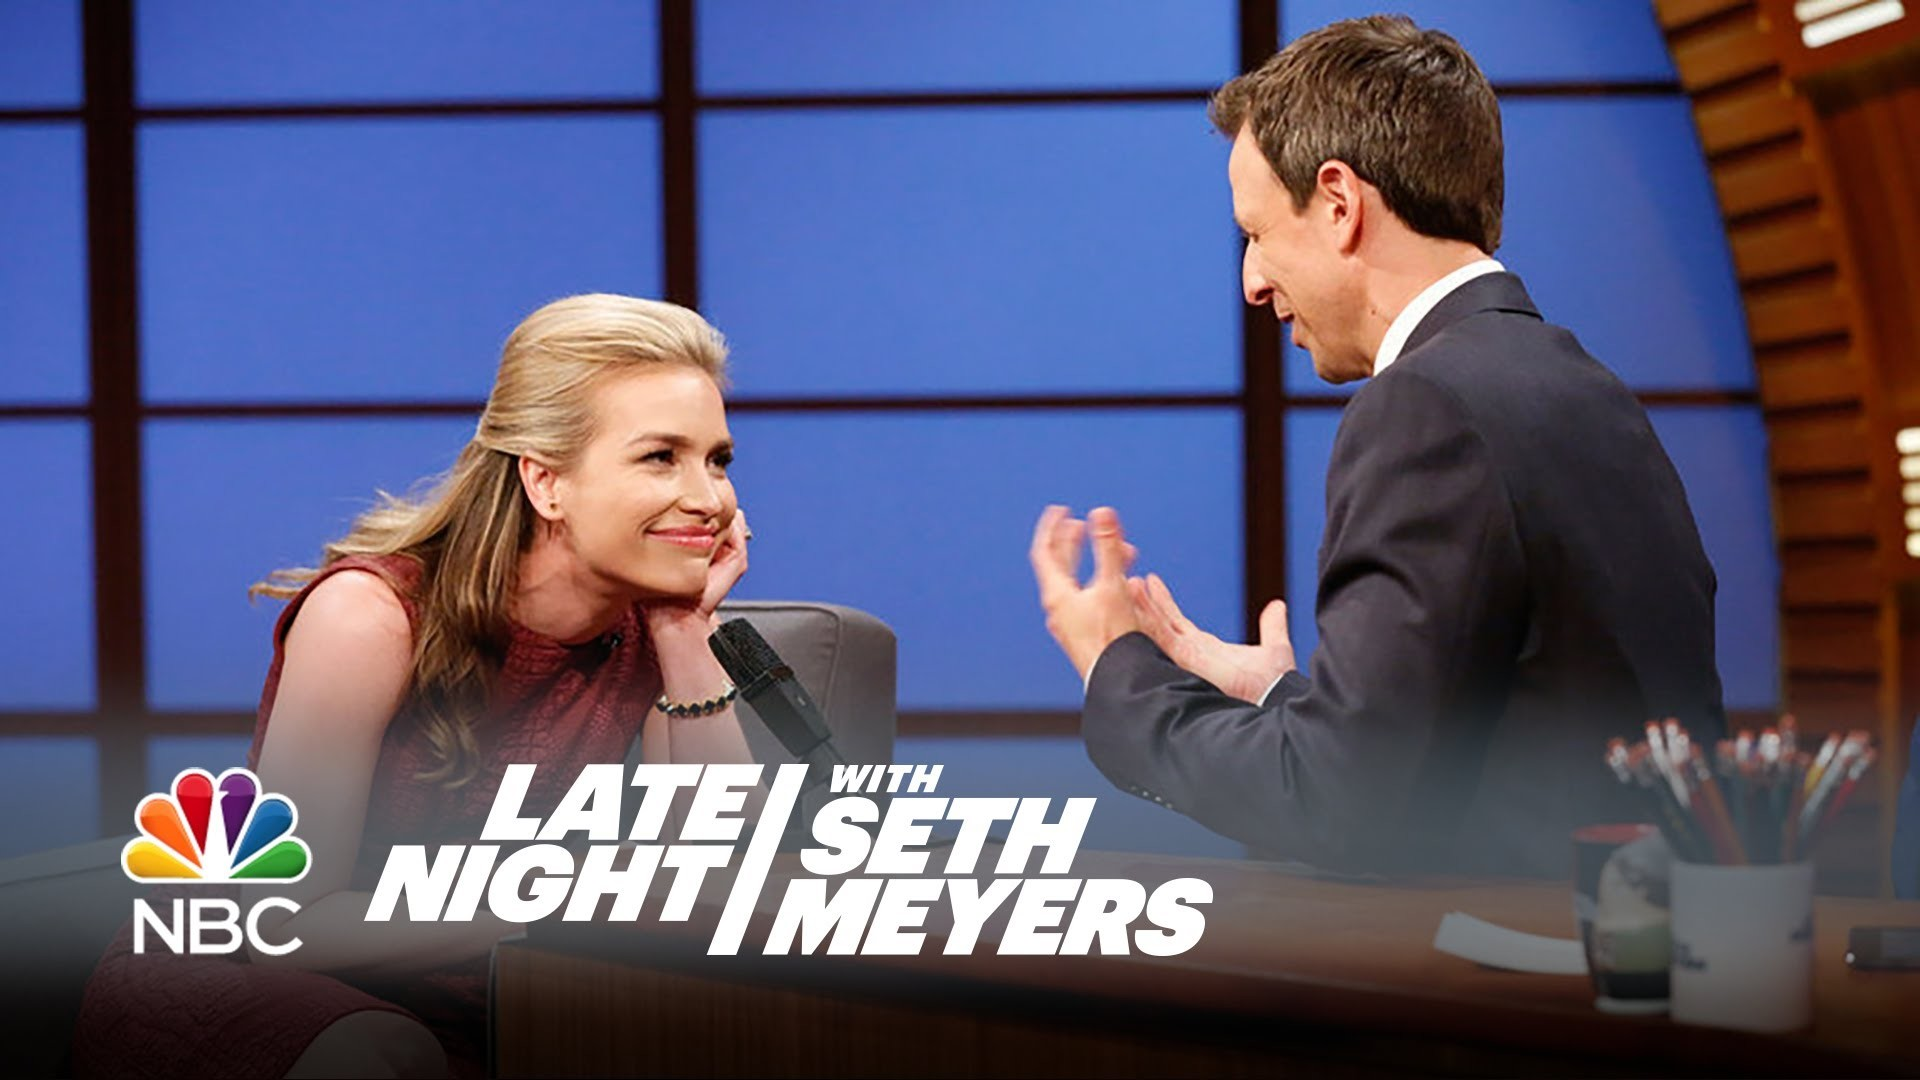 Res: 1920x1080, Piper Perabo and Seth's Interesting First Meeting - Late Night with Seth  Meyers - YouTube